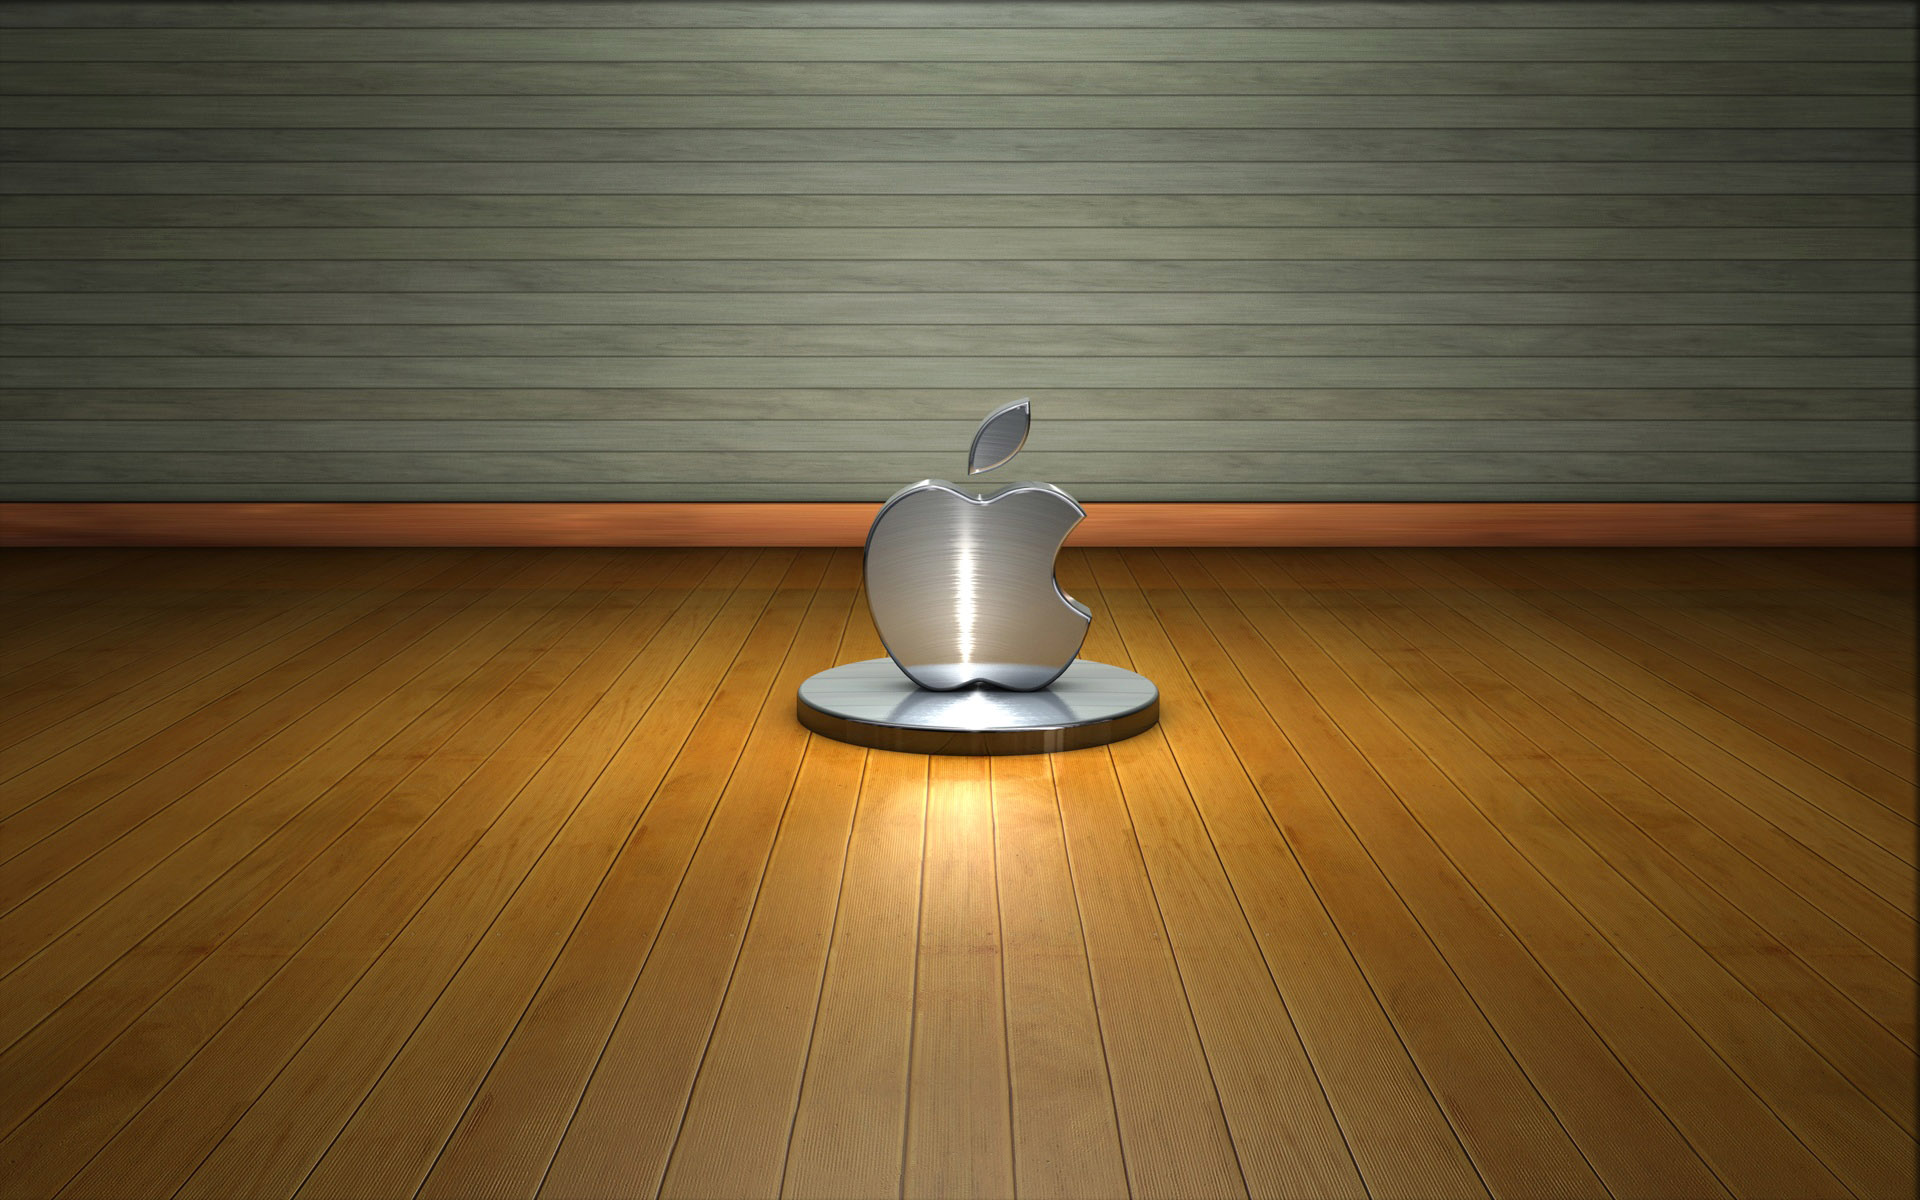 HD Apple wallpaper 20600